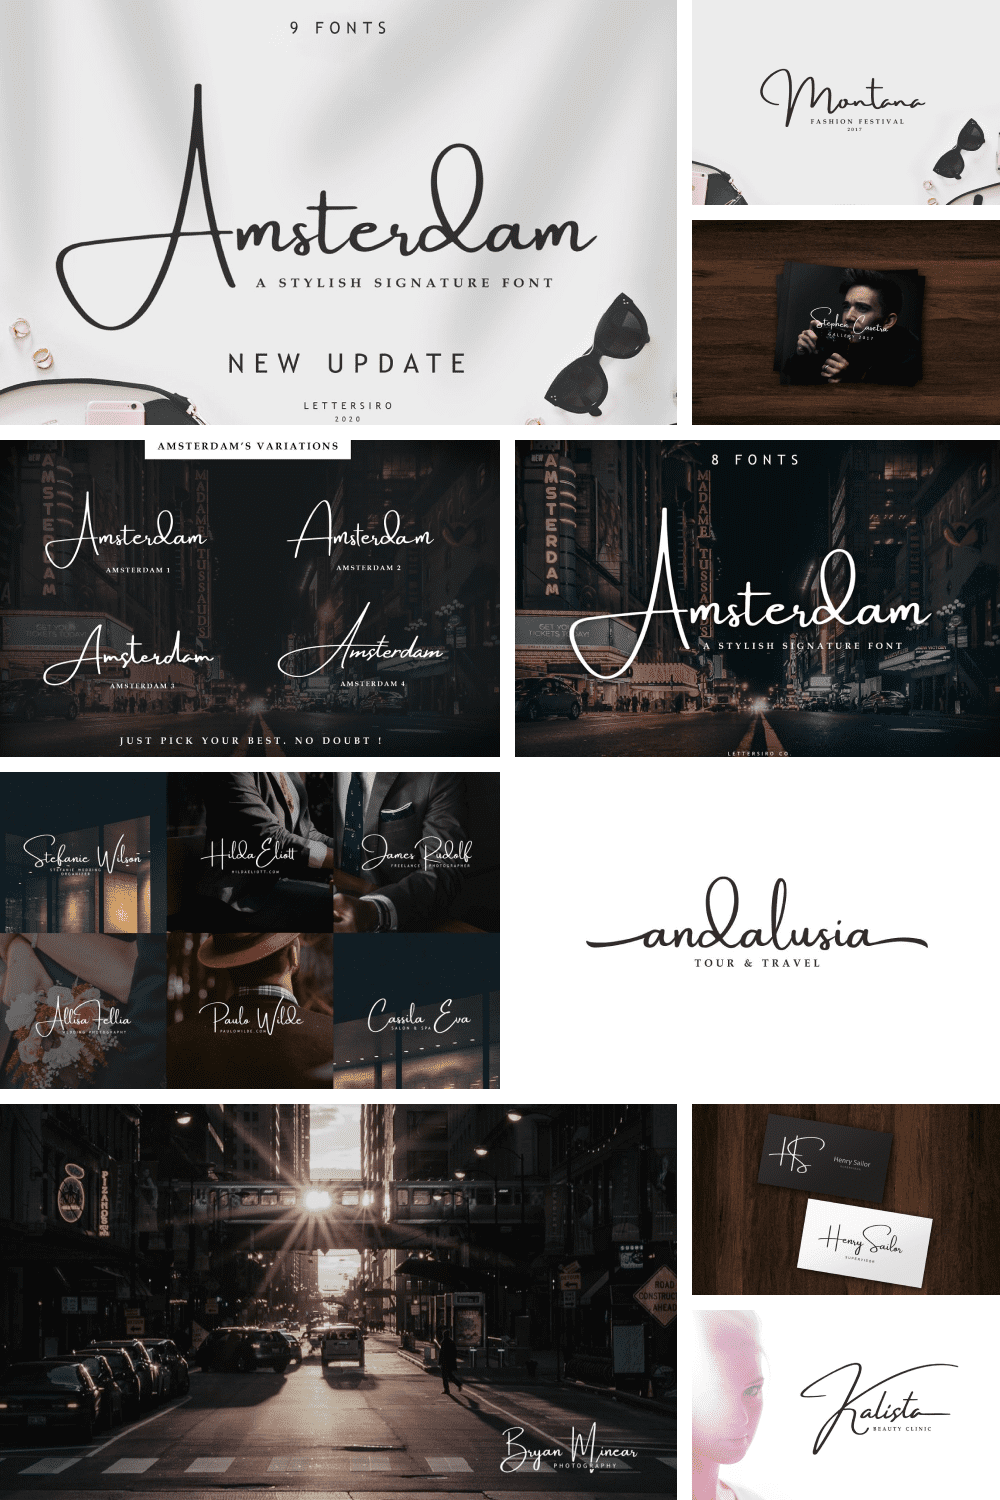 The Amsterdam font is a simple and classy font, comes with elegant variations.